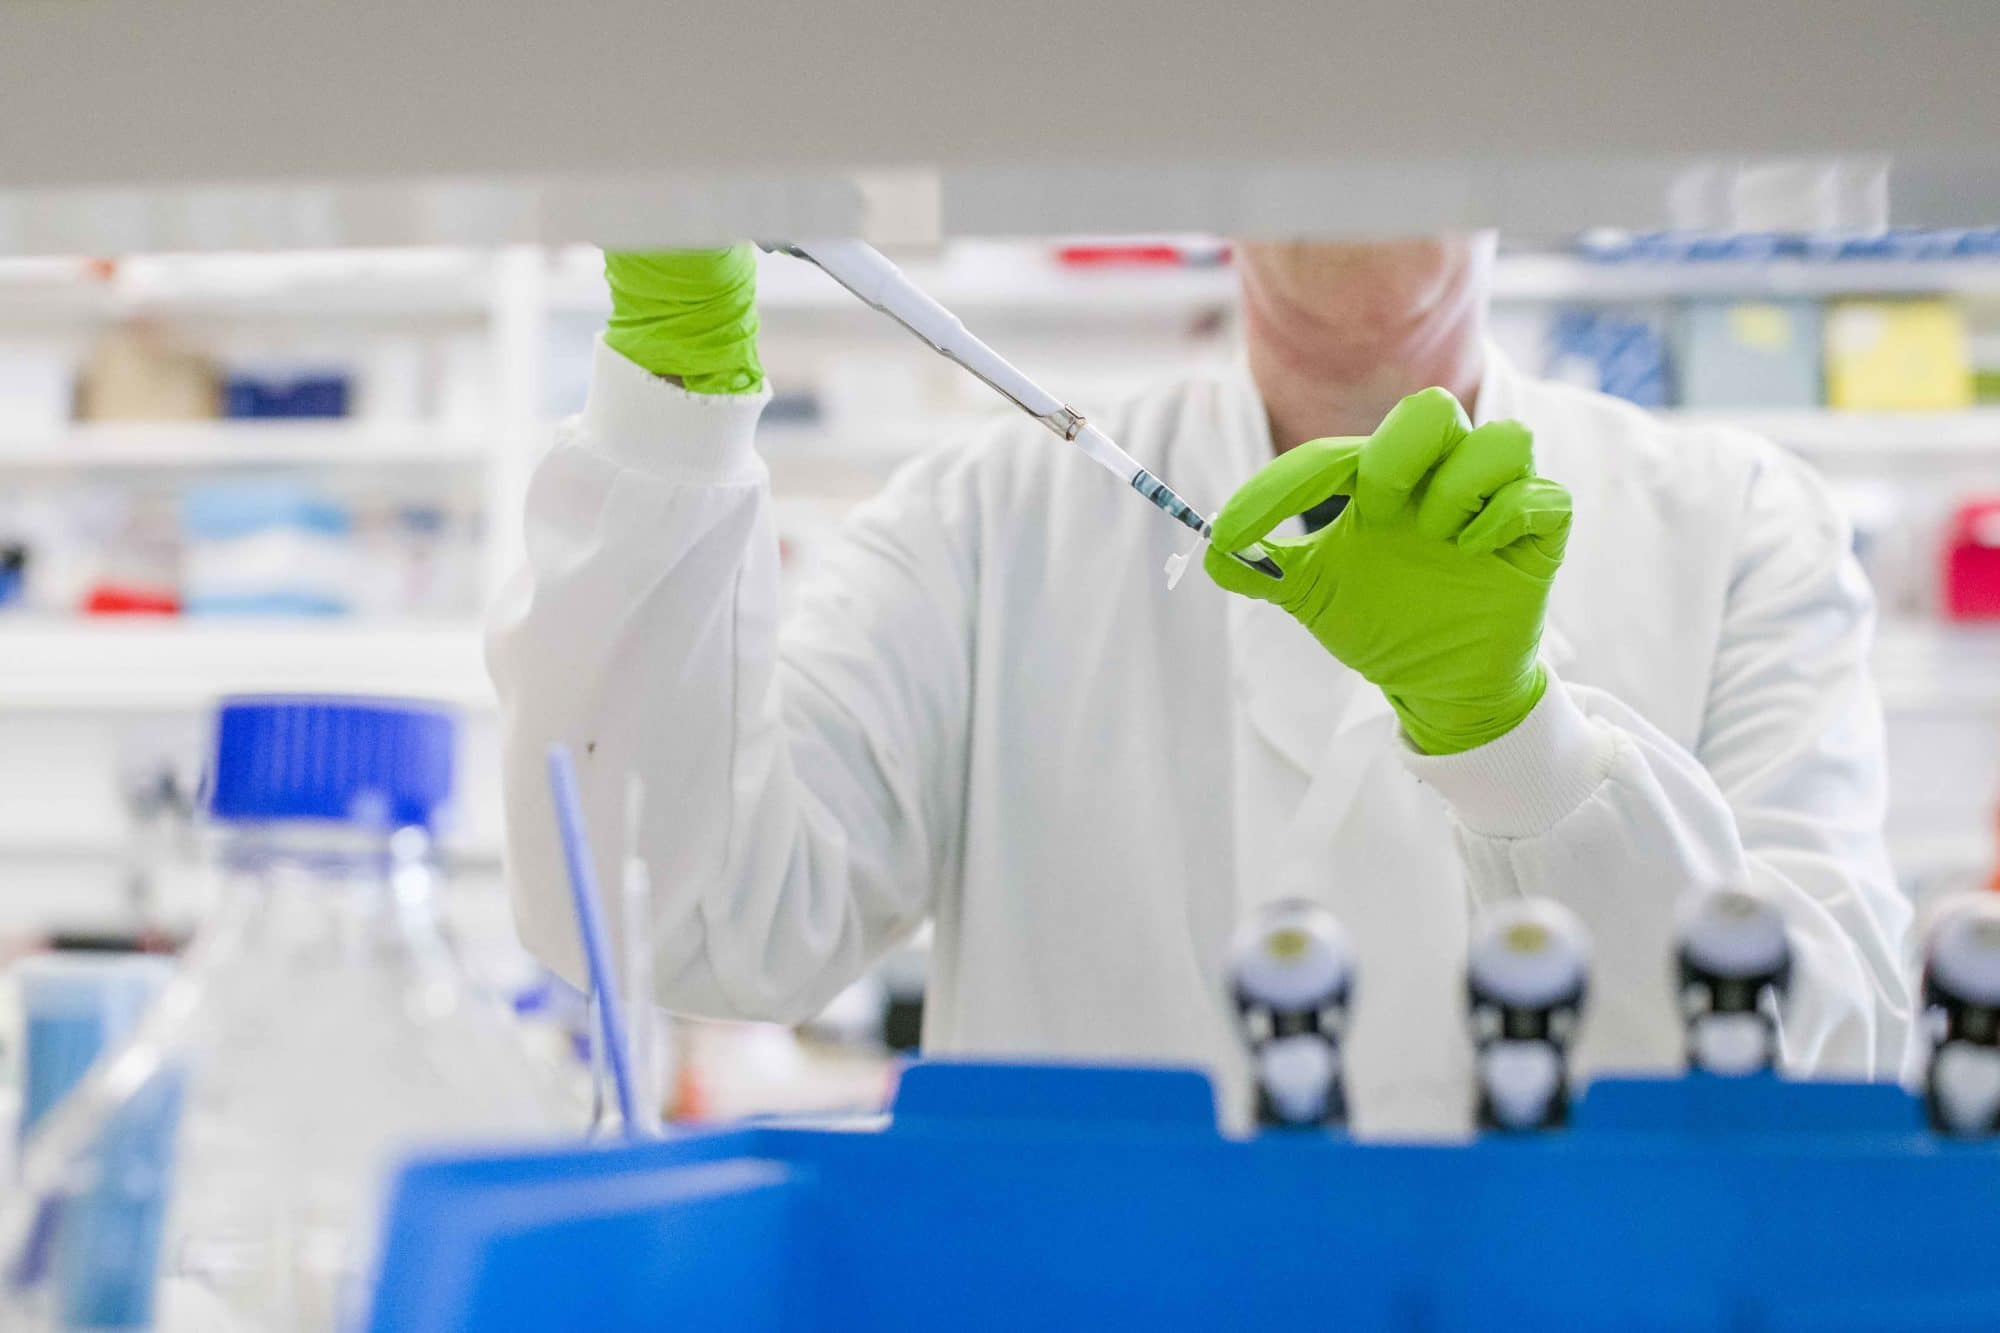 Person in white lab coat using a pipette